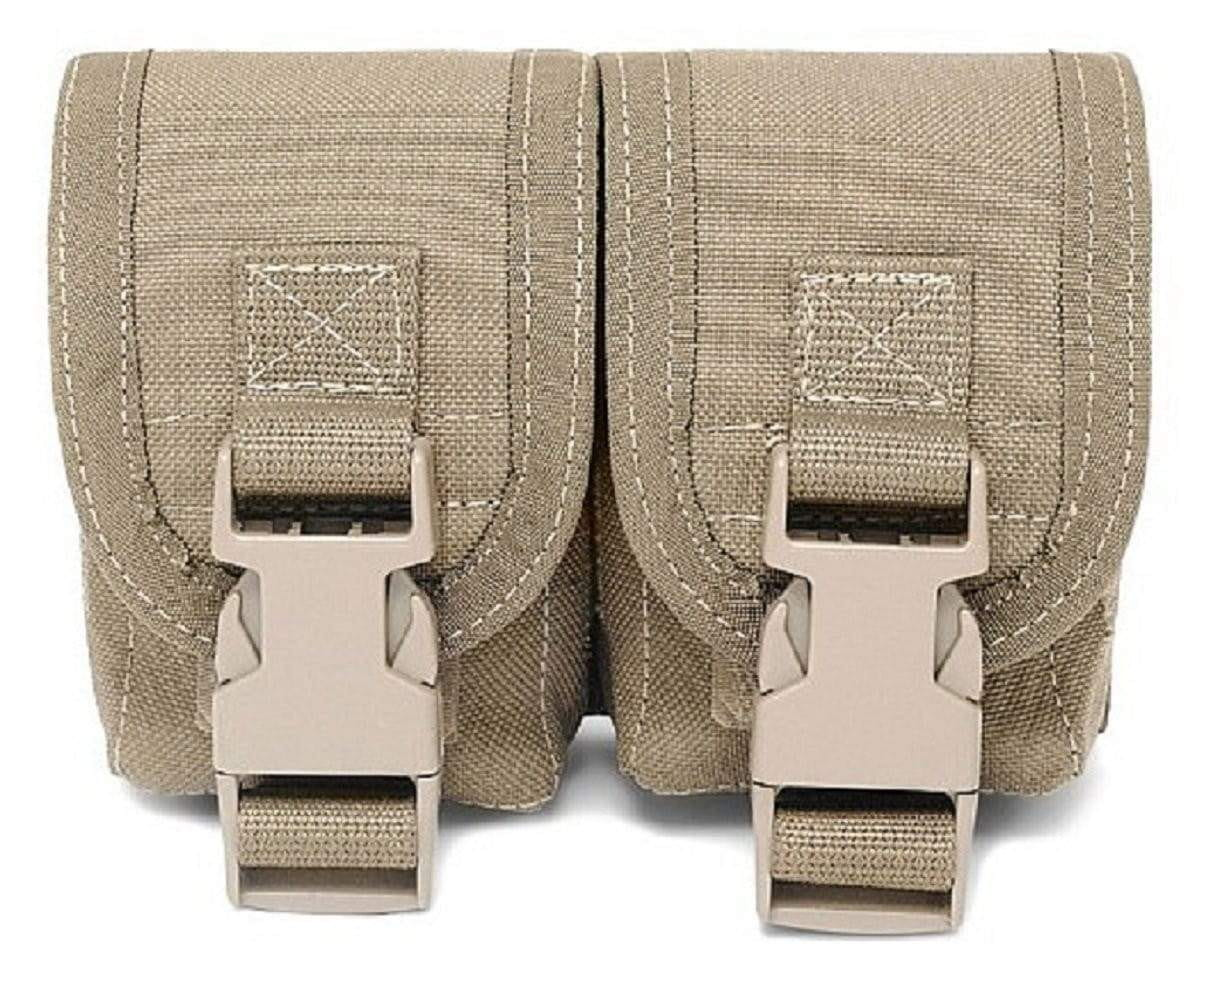 Warrior Assault Systems Double Frag Grenade Pouch - CHK-SHIELD | Outdoor Army - Tactical Gear Shop